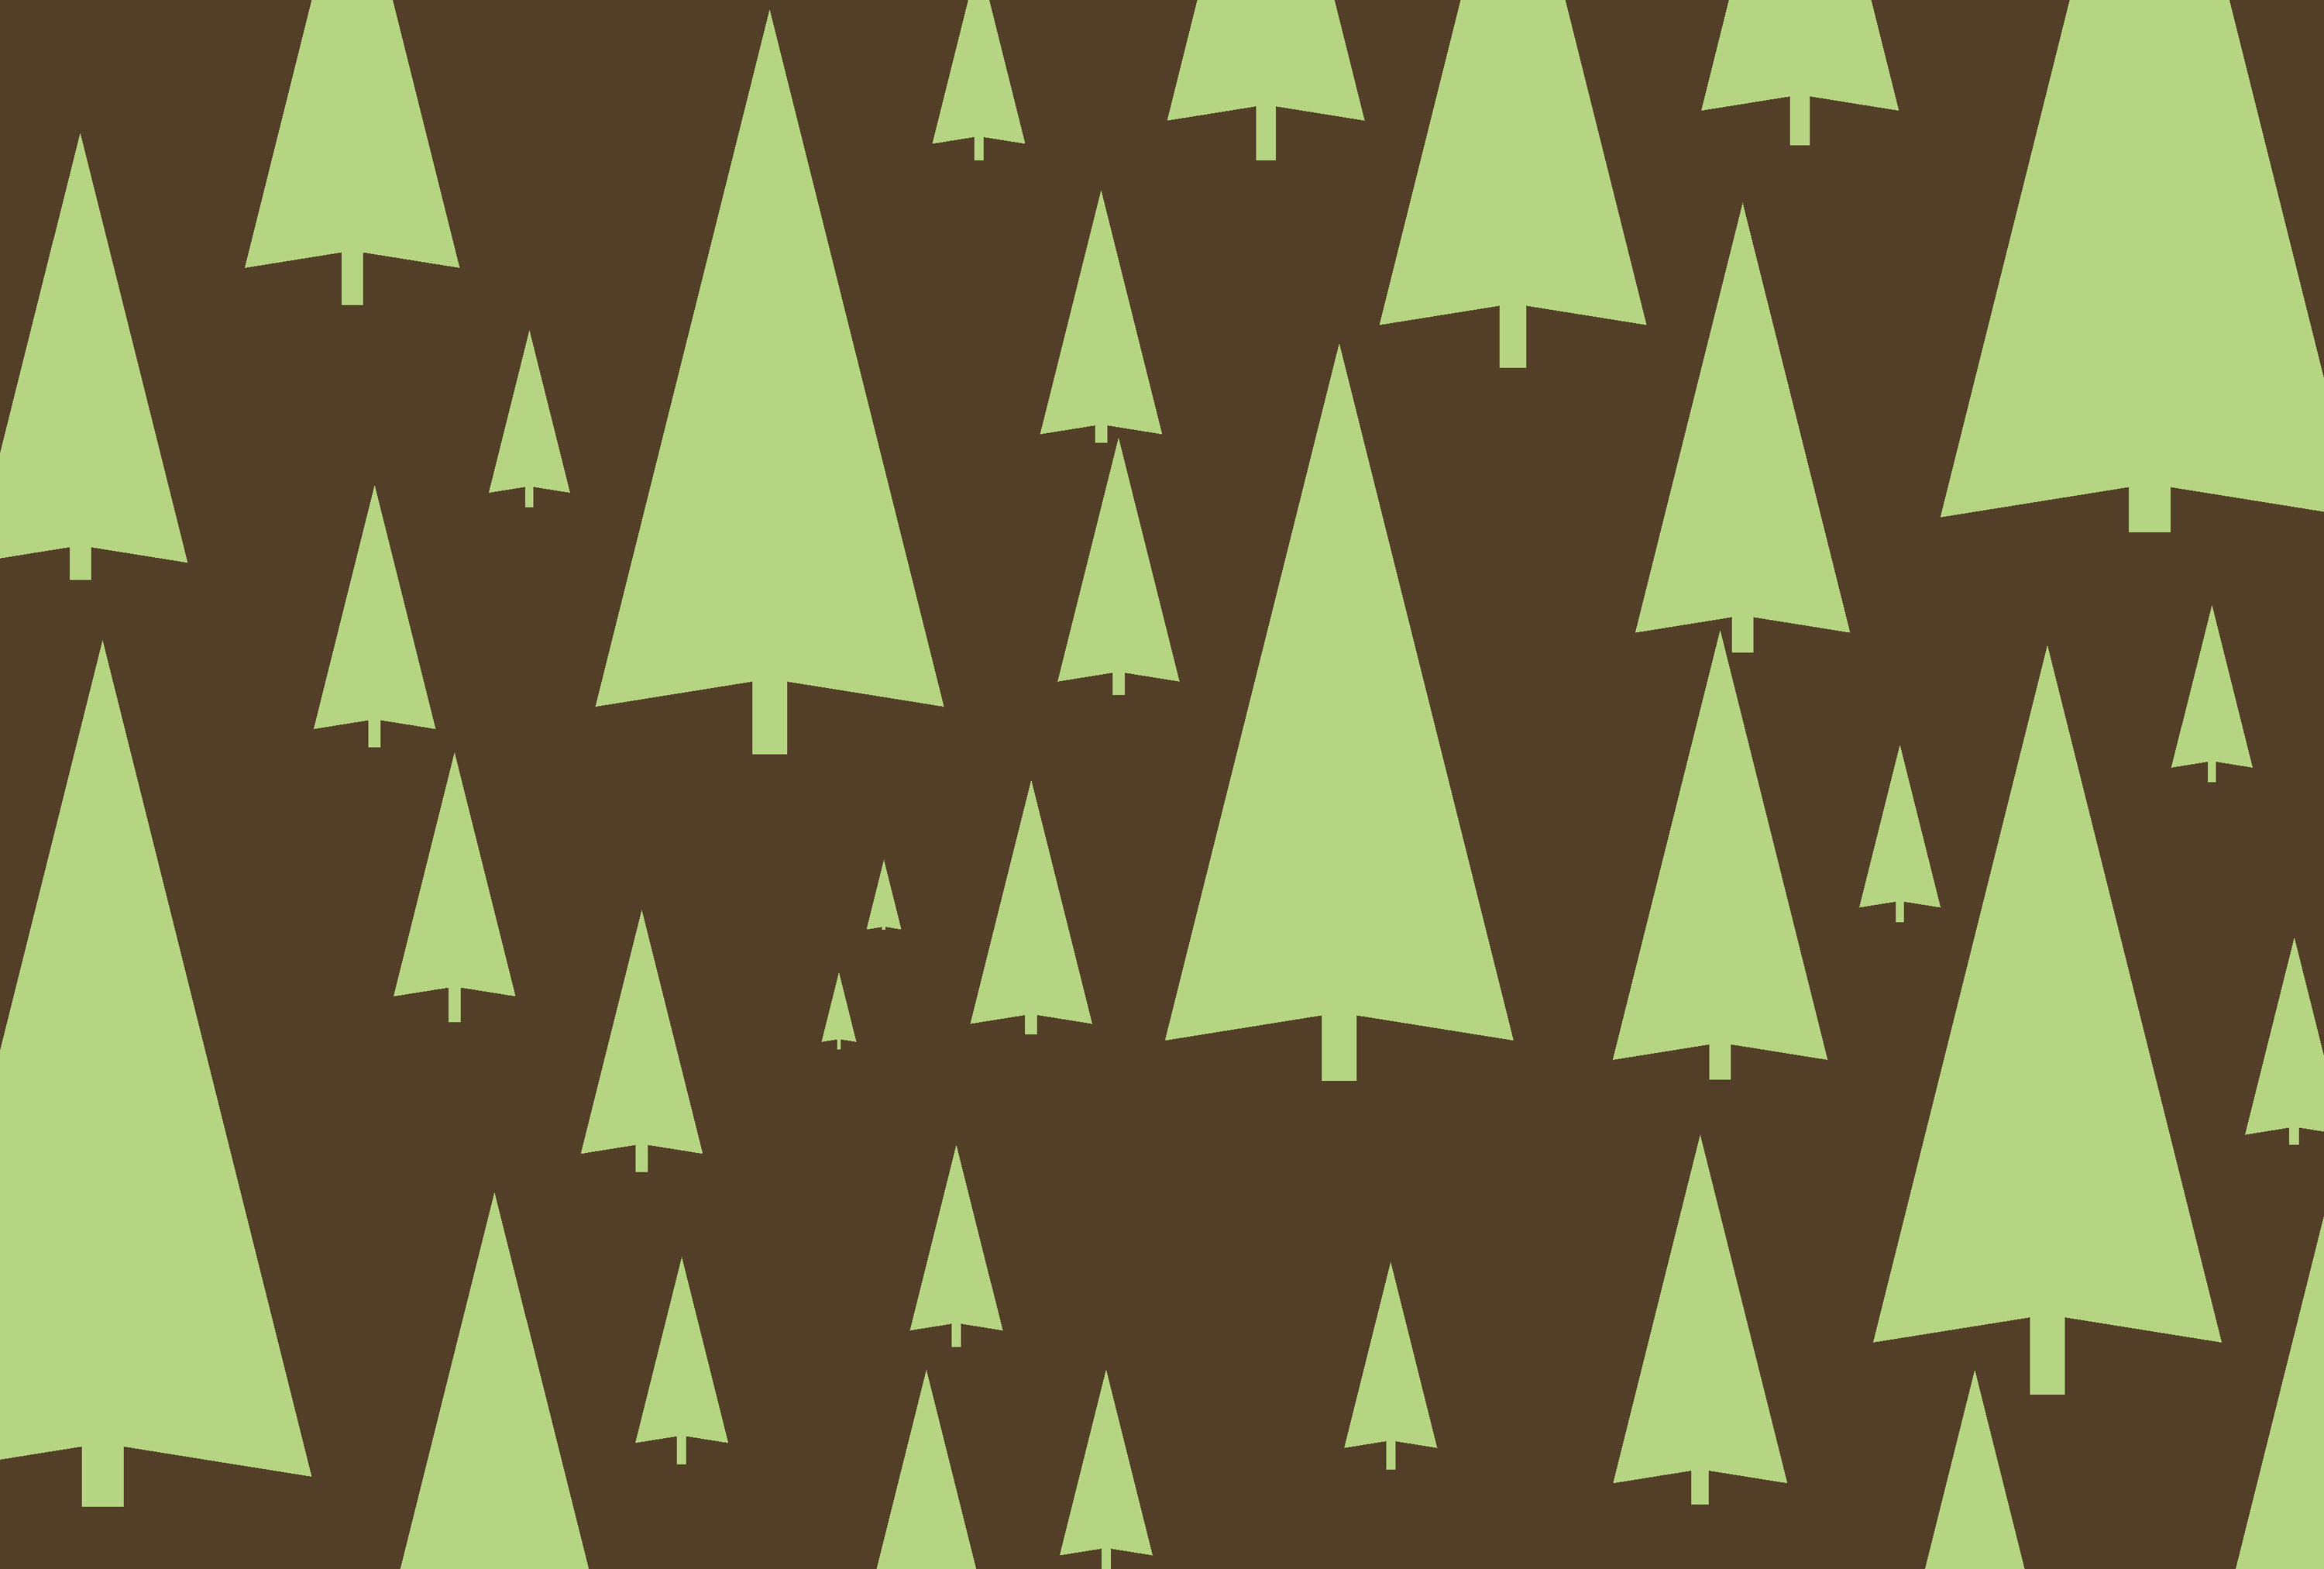 a brown background with green tree symbols make a tastefull festive backdrop